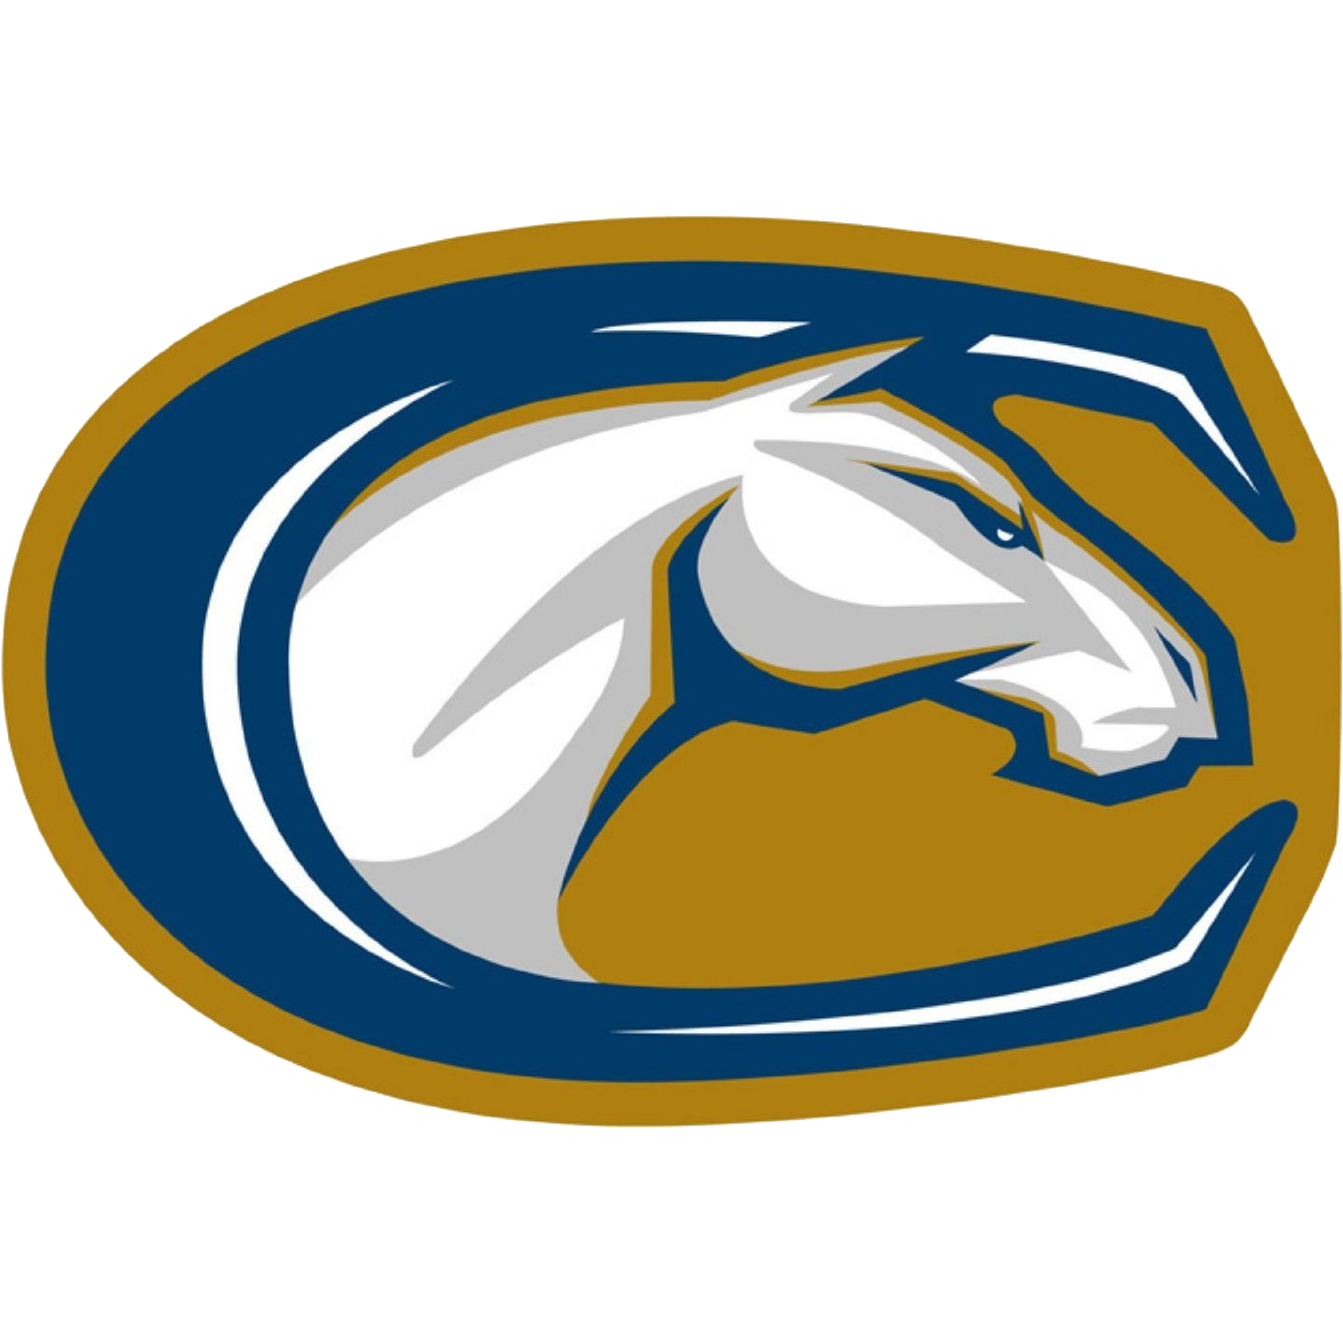 committed to the scholar athlete ideal uc davis